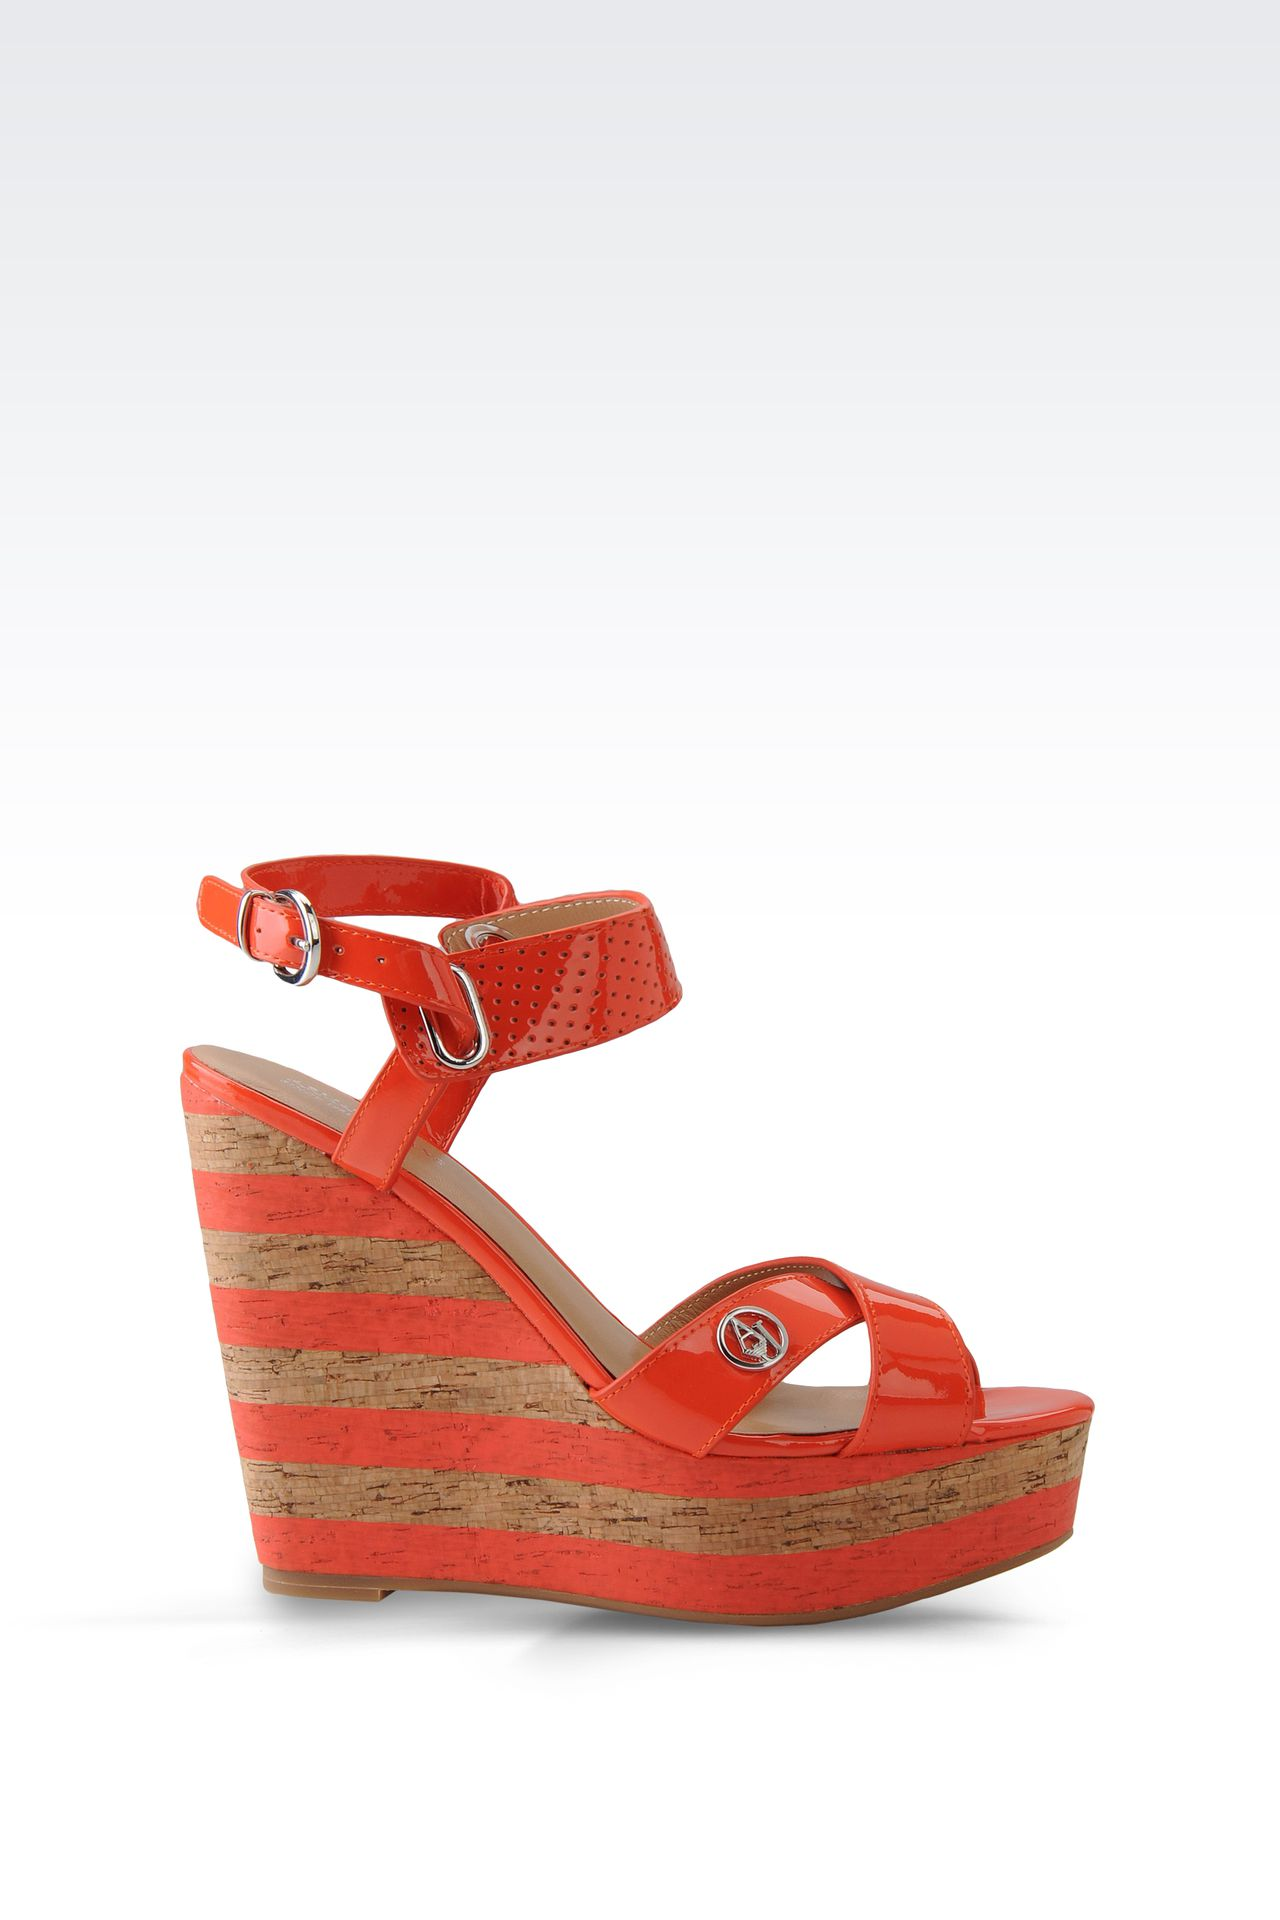 WEDGE SANDAL IN PATENT EFFECT LEATHER: Wedges Women by Armani - 0